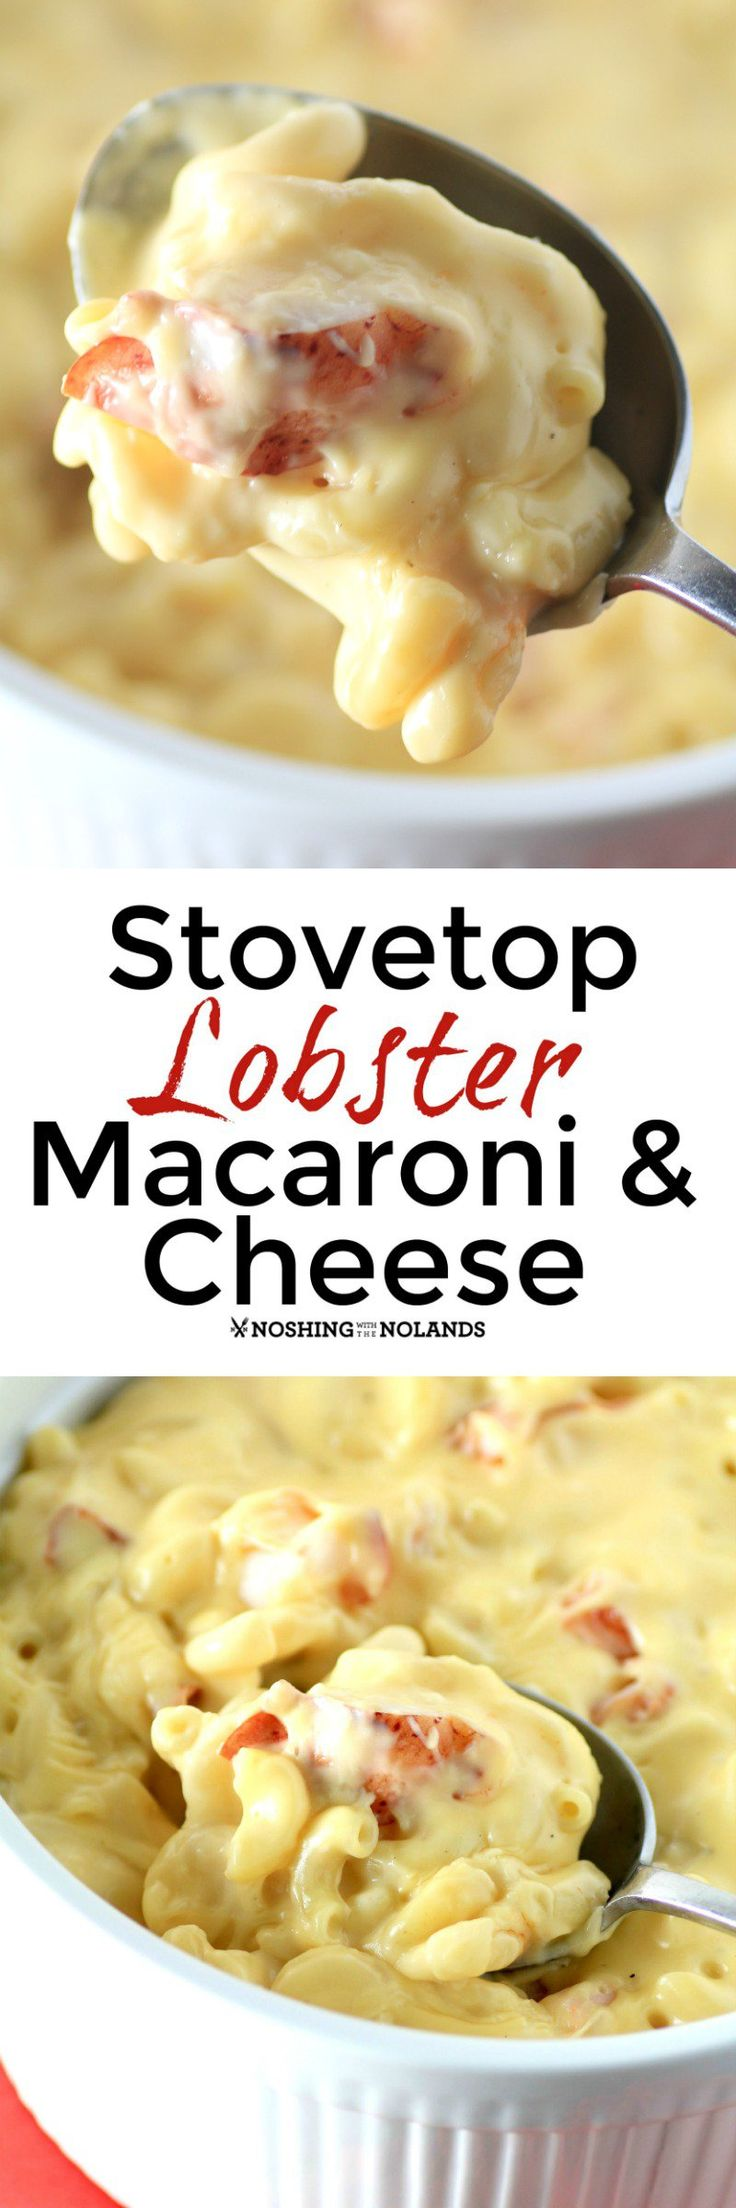 Stovetop Lobster Macaroni and Cheese | Macaroni And Cheese, Macaroni ...